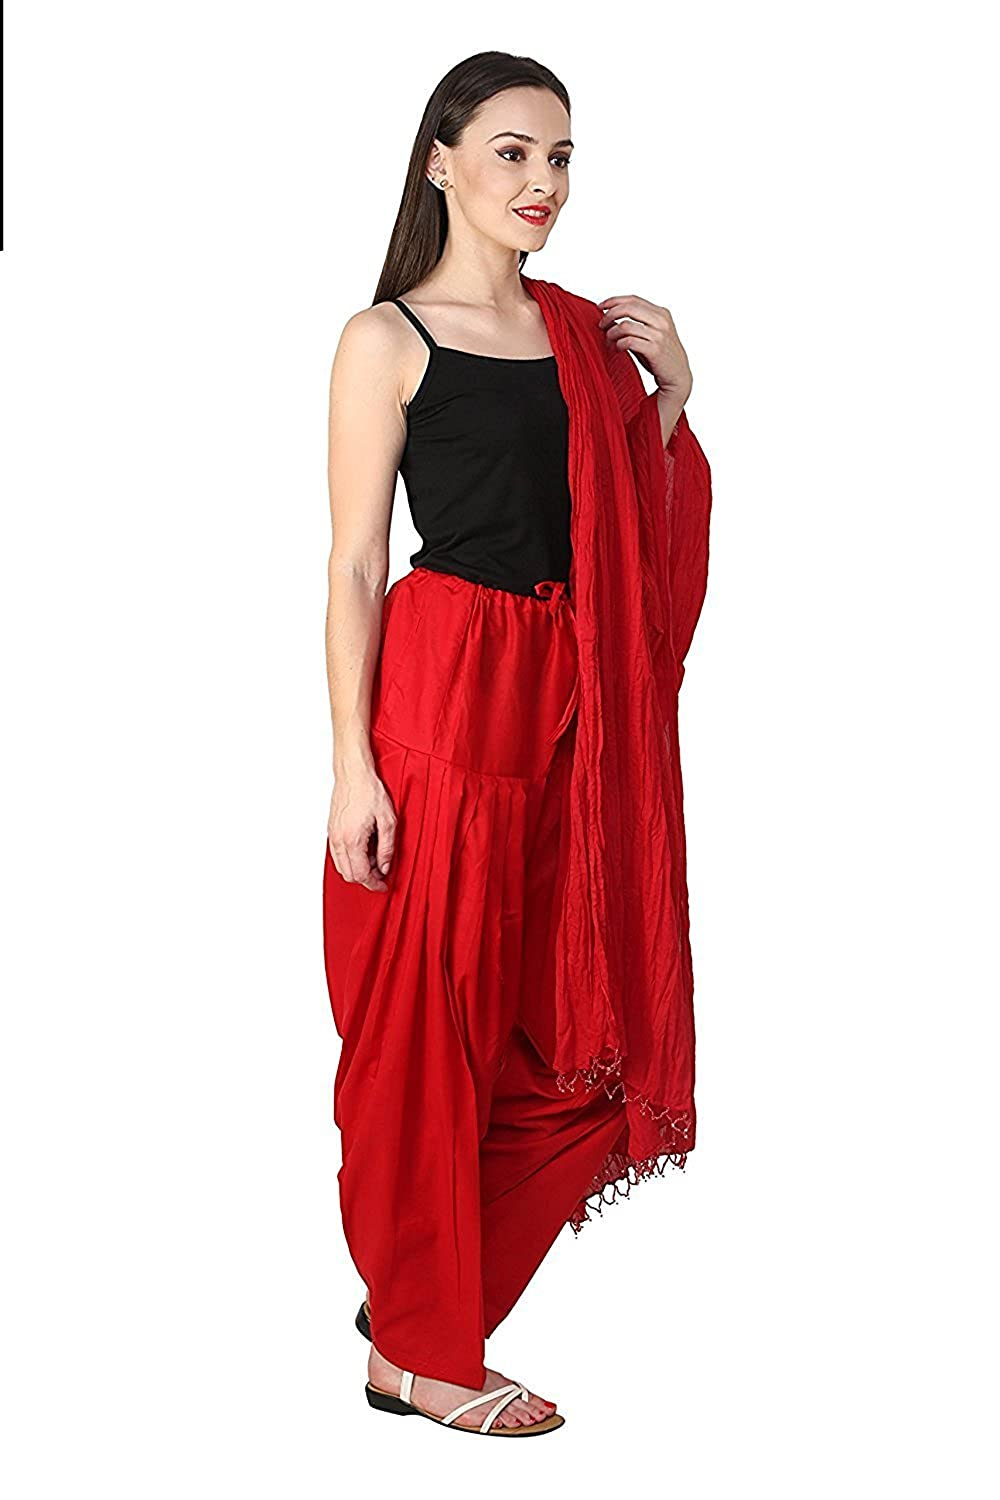 || Green World Fashion || Red Indian Readymade Patiala Salwar Dupatta Set Perfect for Party, Wedding & All Occasions (fit with Kurta, Suits, Kurte, T-Shirts Etc.)